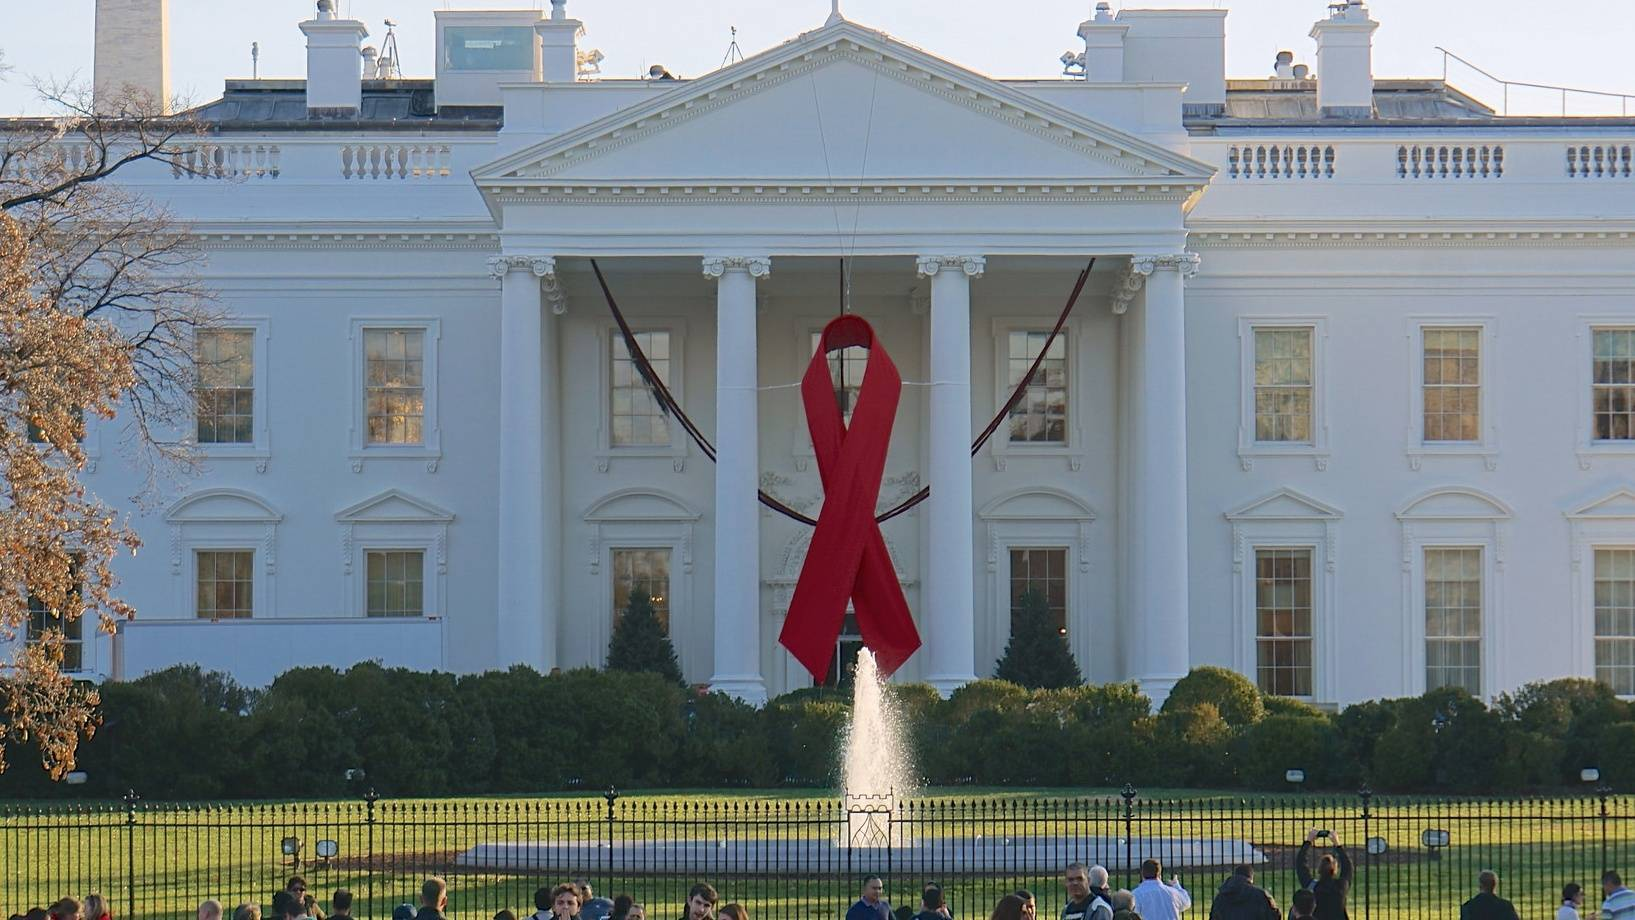 Despite Other States Declining HIV/AIDS Rates Miss. Remains 4th In Nation